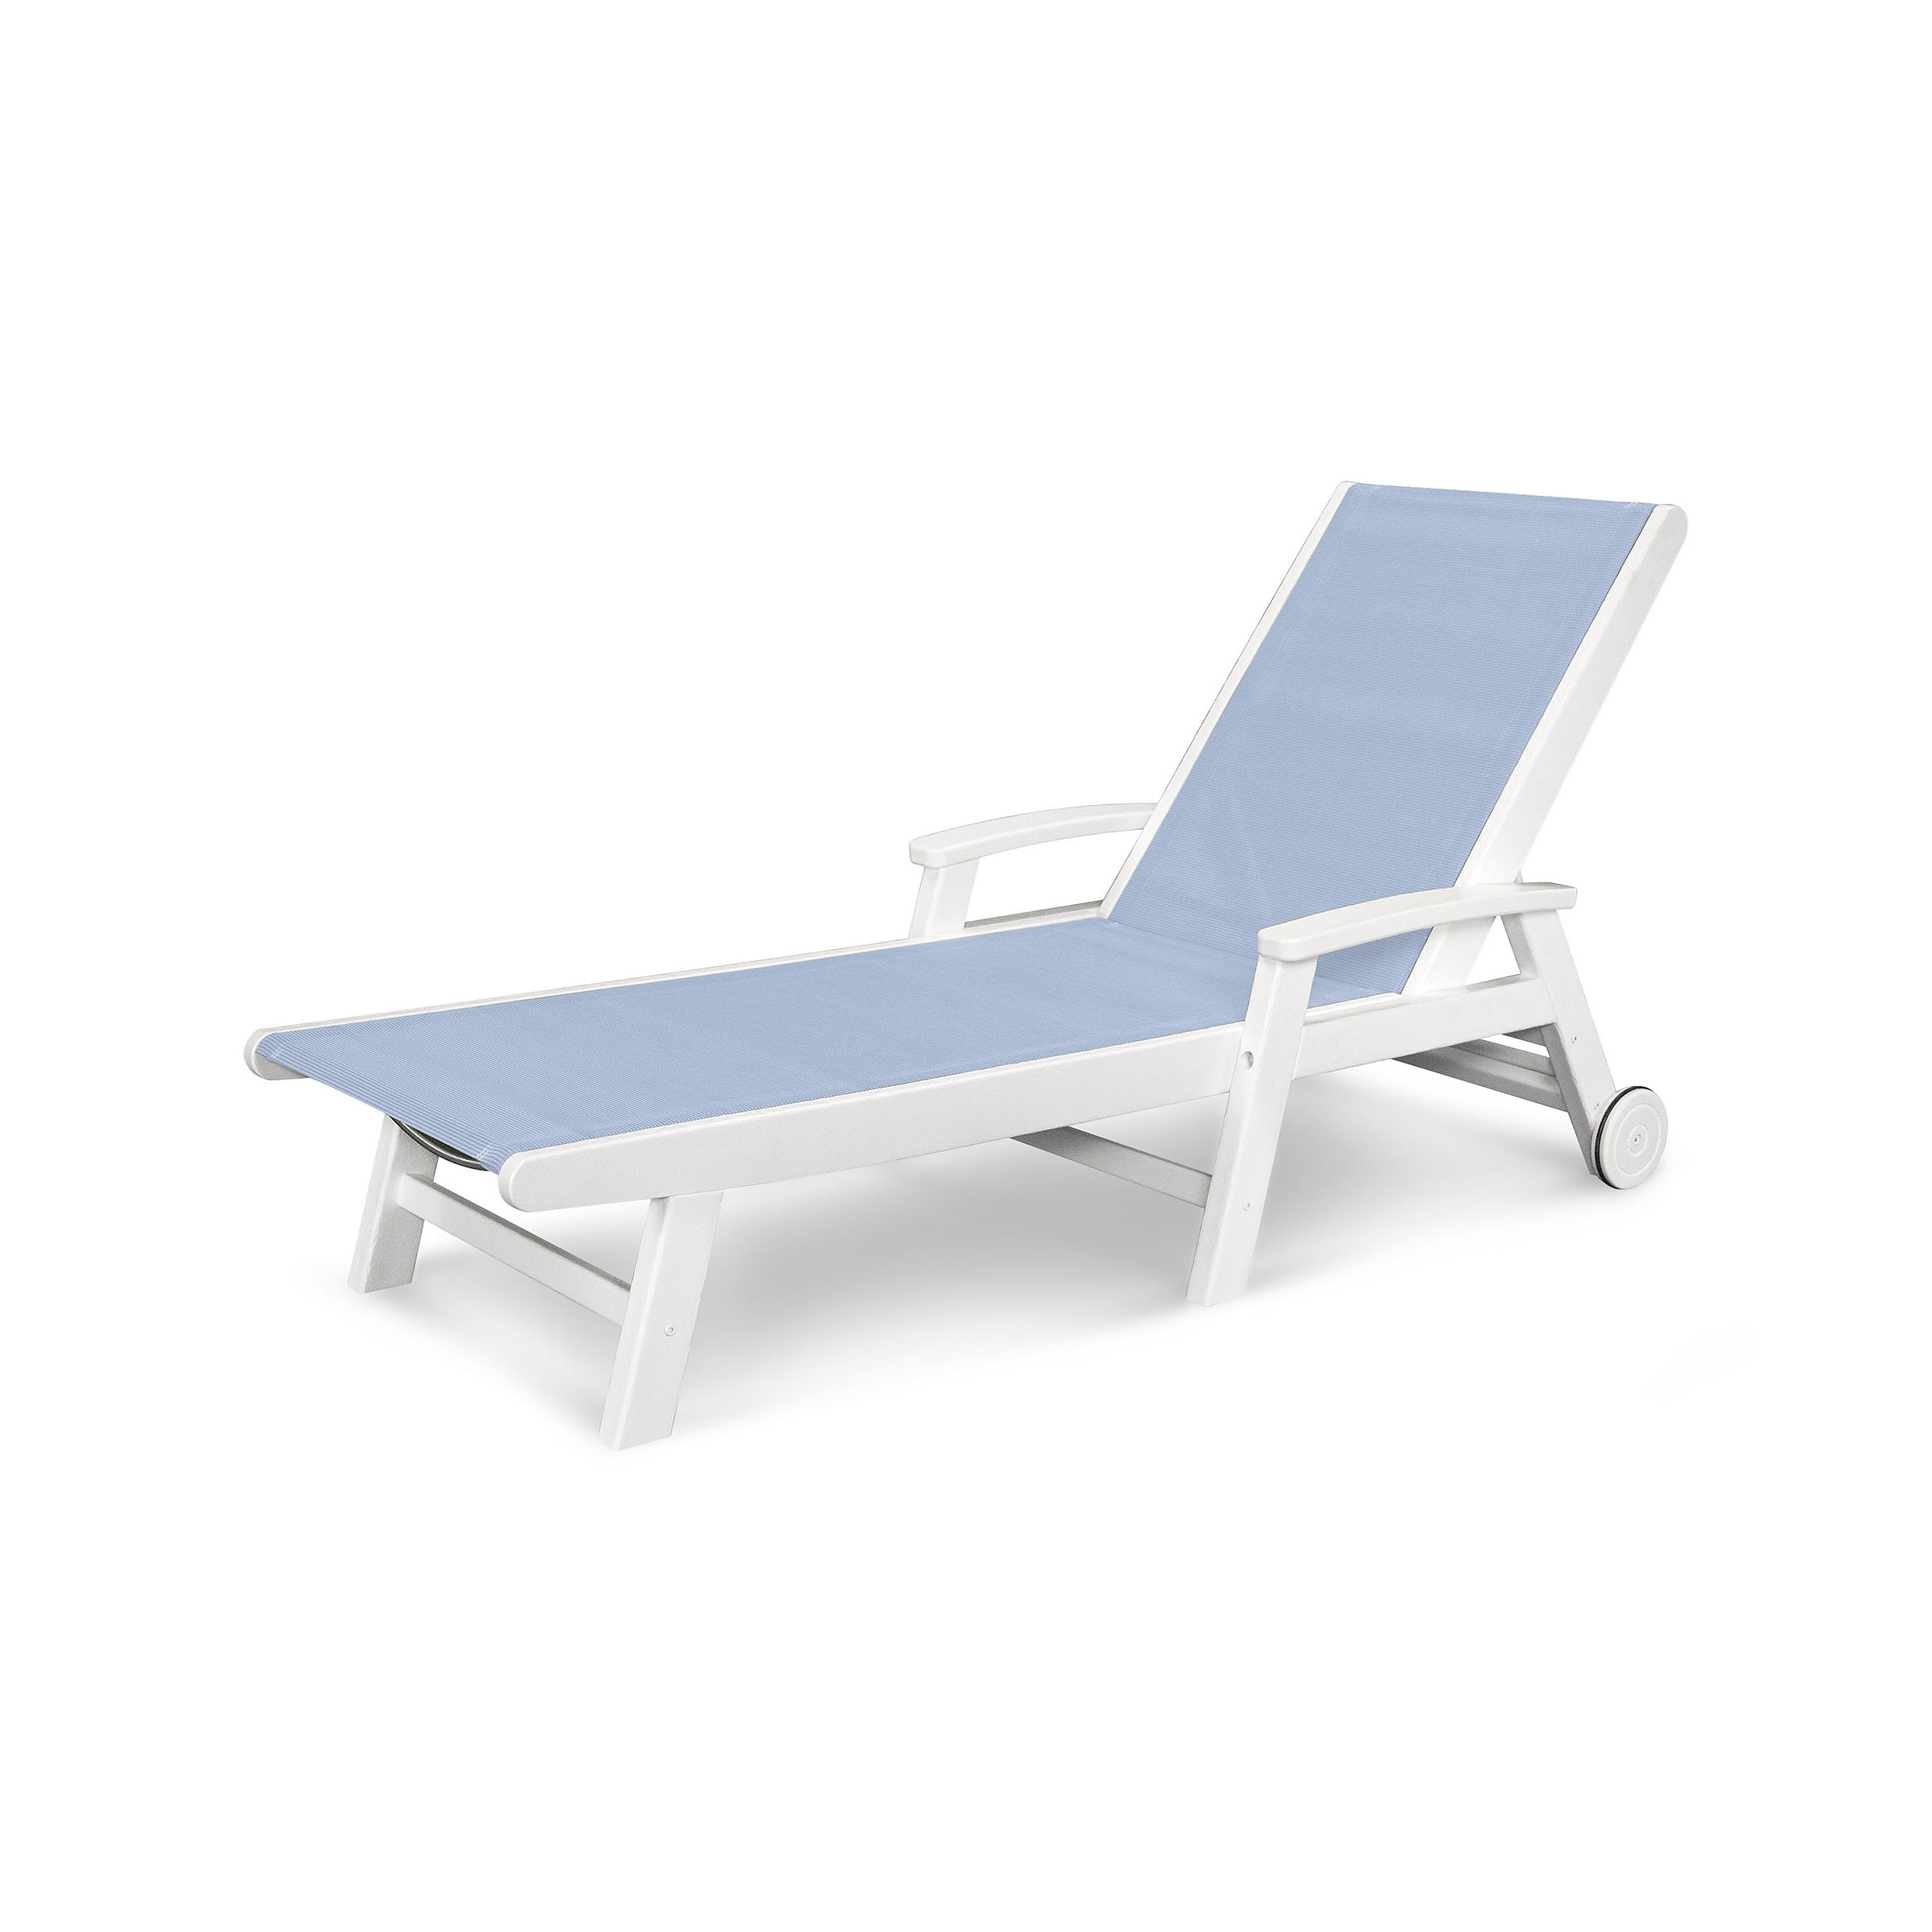 Latest Plastic Chaise Lounges In Polywood Furniture (View 3 of 15)